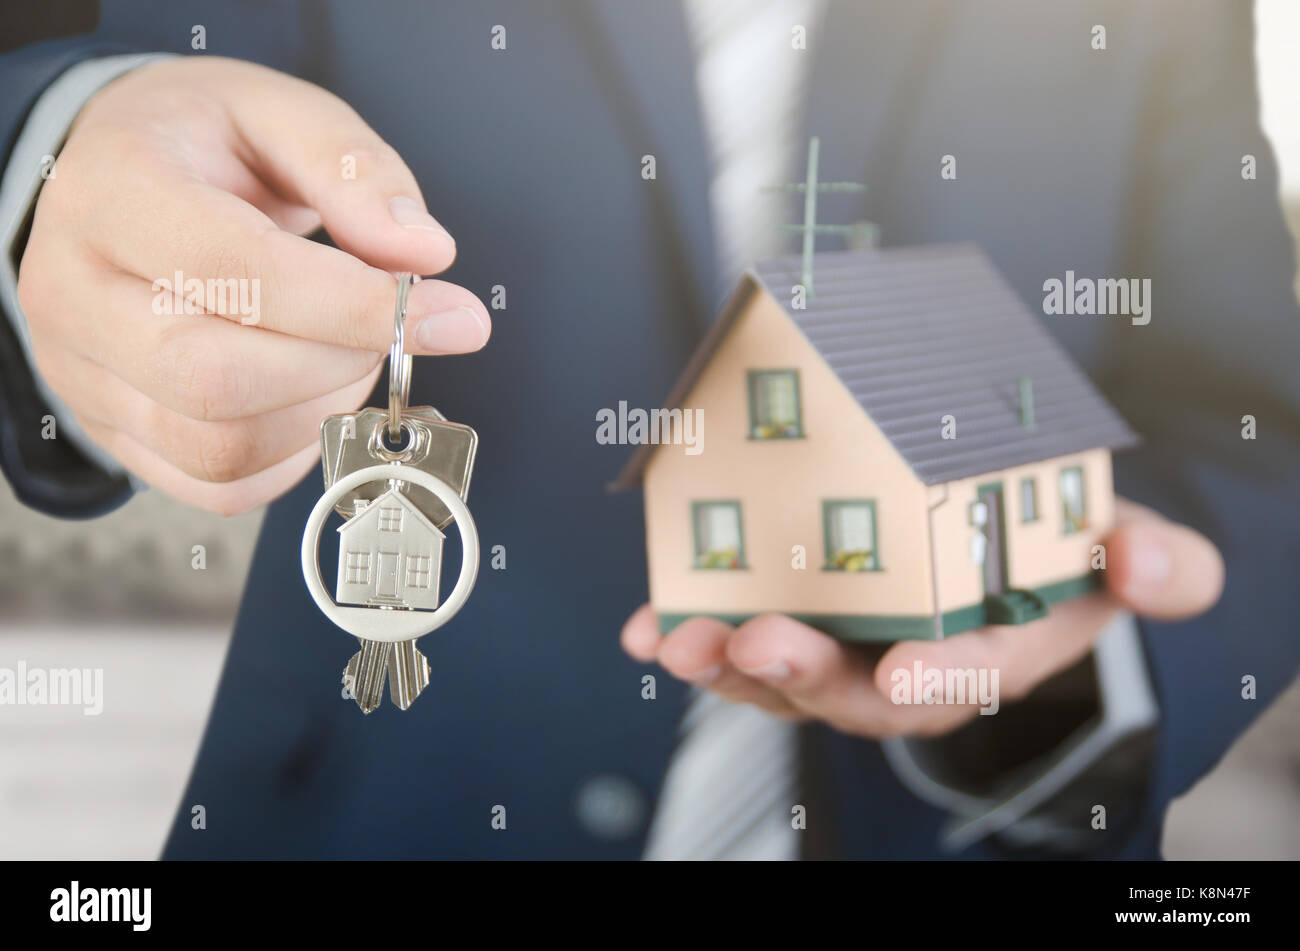 Real estate agent with home keys and house miniature. realestate key apartment real estate home house homeowner - Stock Image